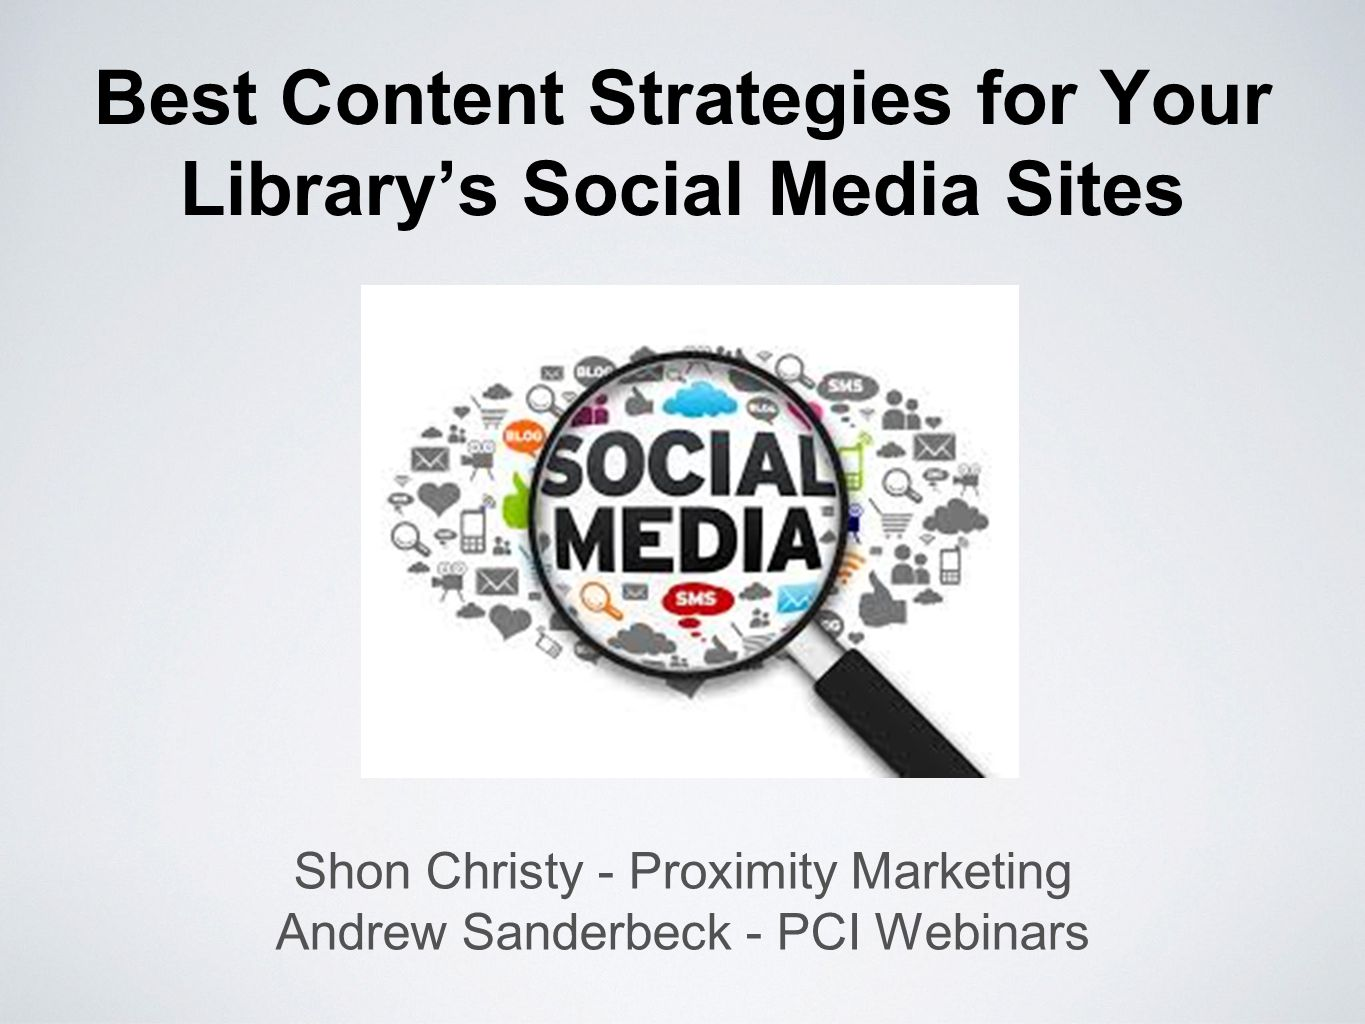 Best Content Strategies for Your Library's Social Media Sites Shon Christy - Proximity Marketing Andrew Sanderbeck - PCI Webinars